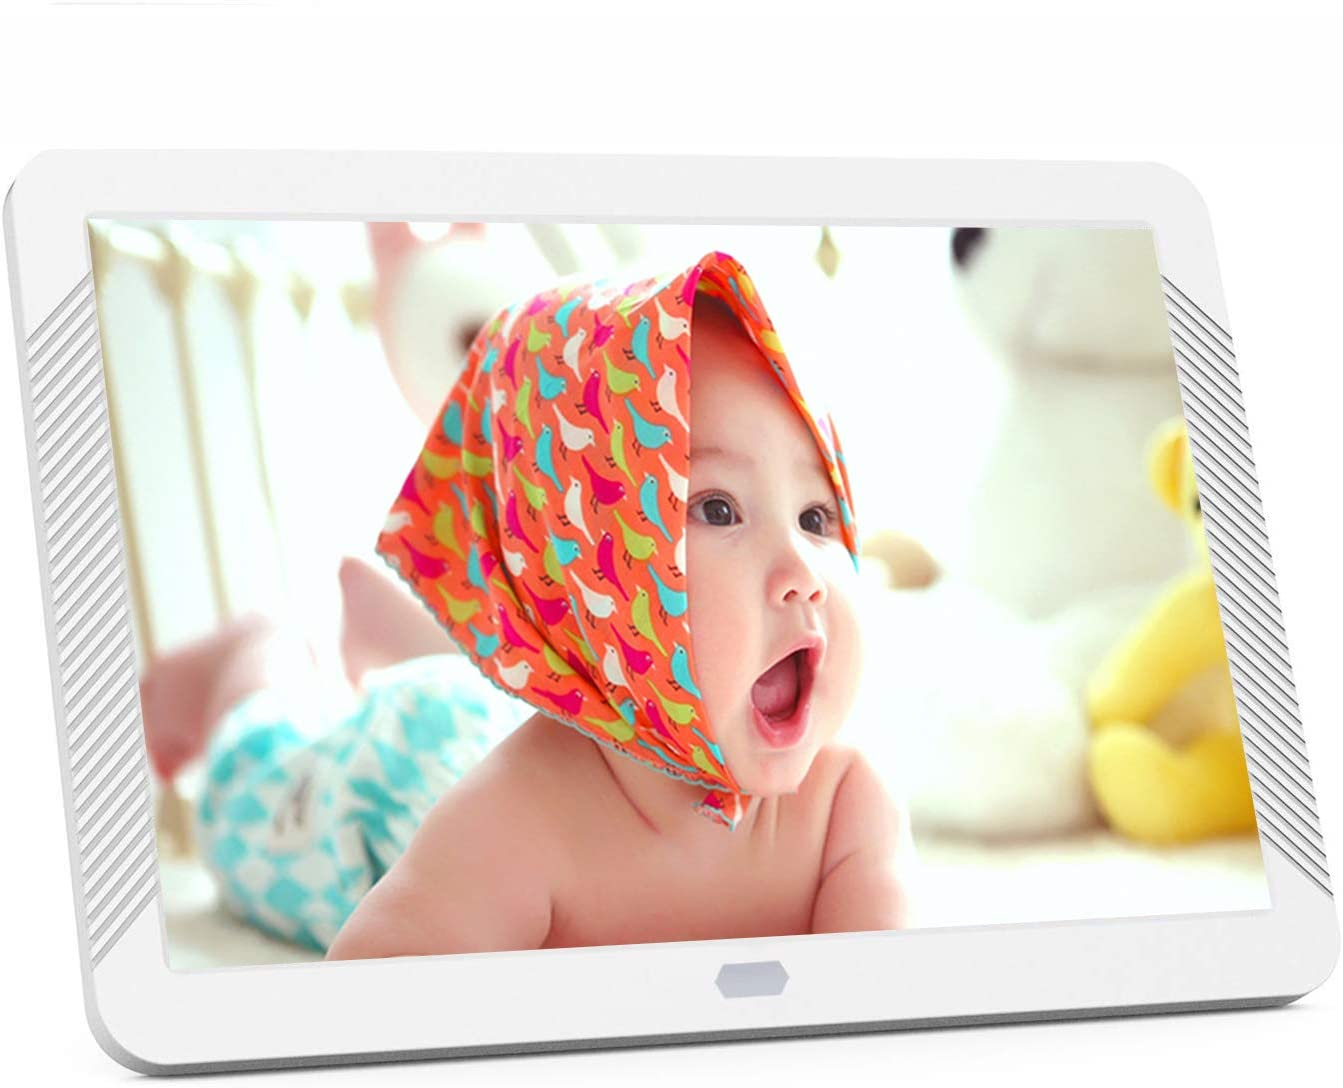 8 Inch Digital Photo Frame with 1920×1080 IPS Screen, Digital Picture Frame Support Adjustable Brightness, Photo Deletion, 1080P Video, Music,Slideshow,Remote,16 9 Widescreen,Suppot 128GB SD Card, USB